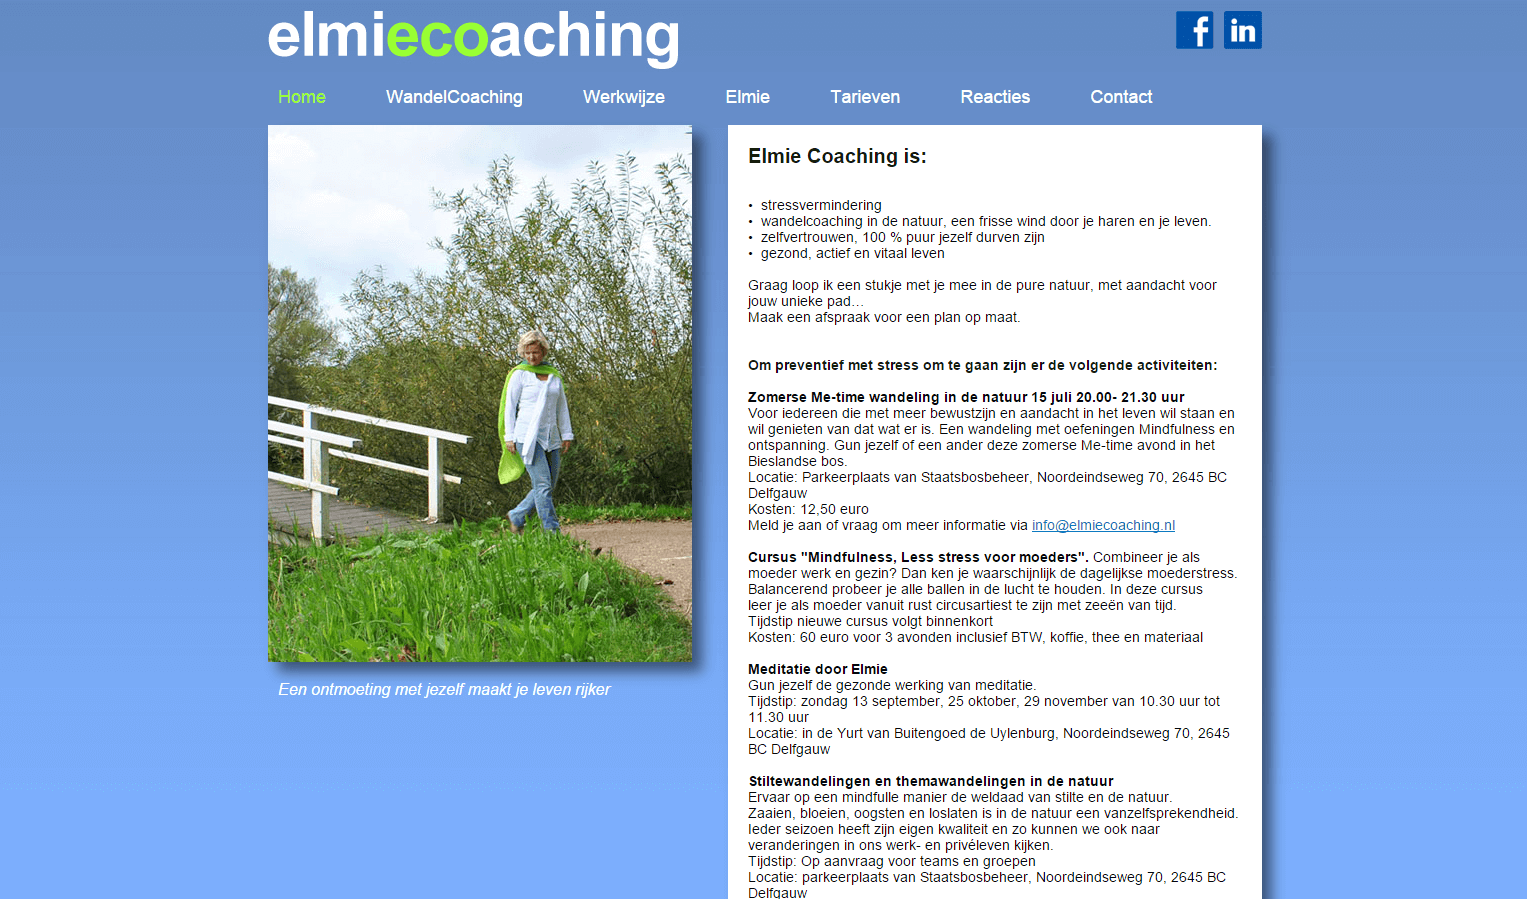 Elmie Coaching website